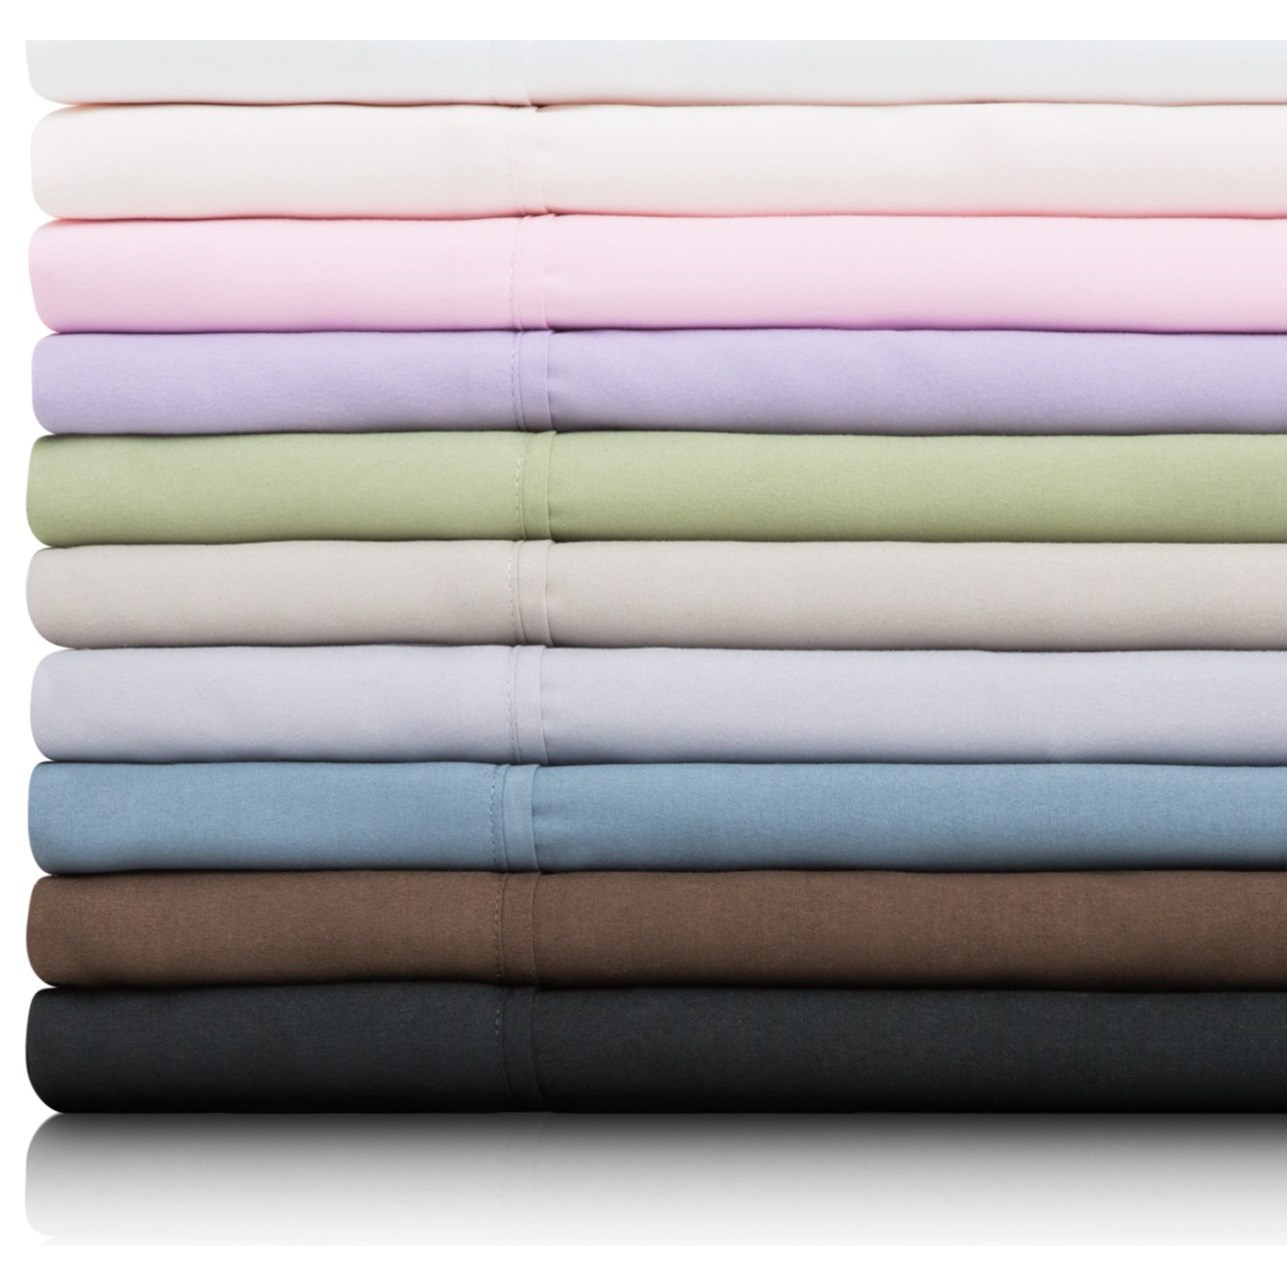 Malouf Brushed Microfiber Queen Woven™ Brushed Microfiber Sheet Set - Item Number: MA90QQLIMS